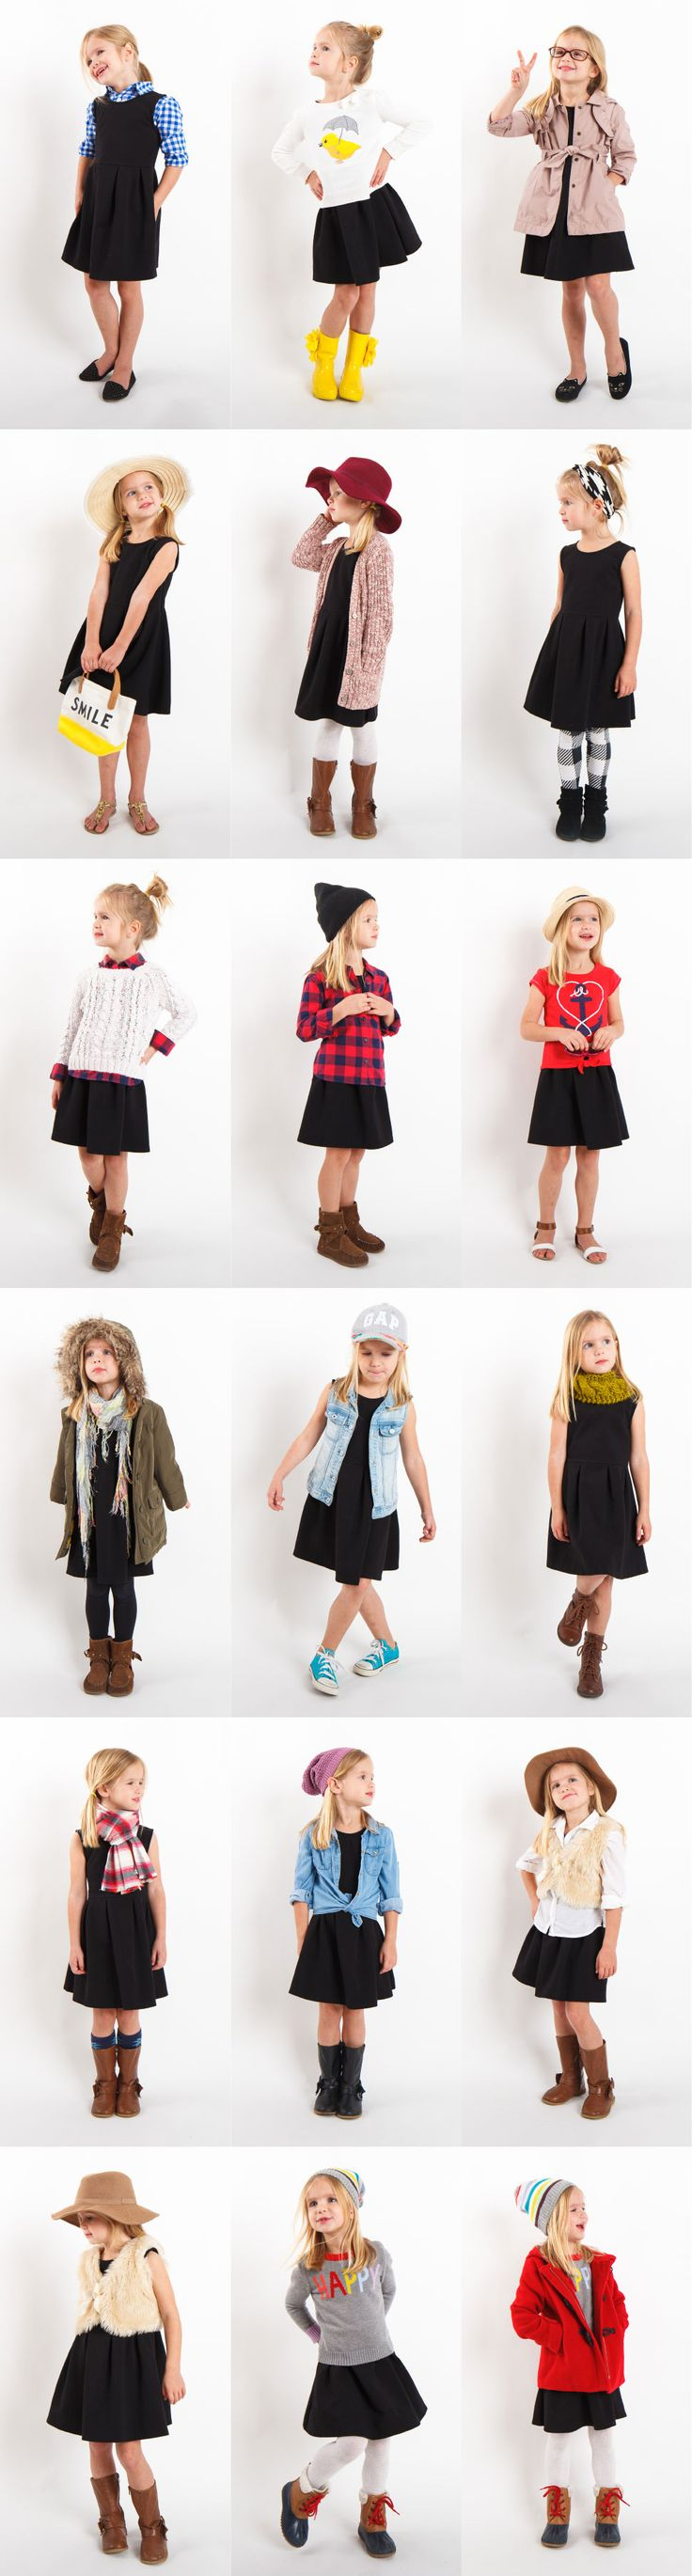 "Preschooler ""Little Black Dress"" Style Project! 18 Outfits with ONE little black dress from Old Navy!"